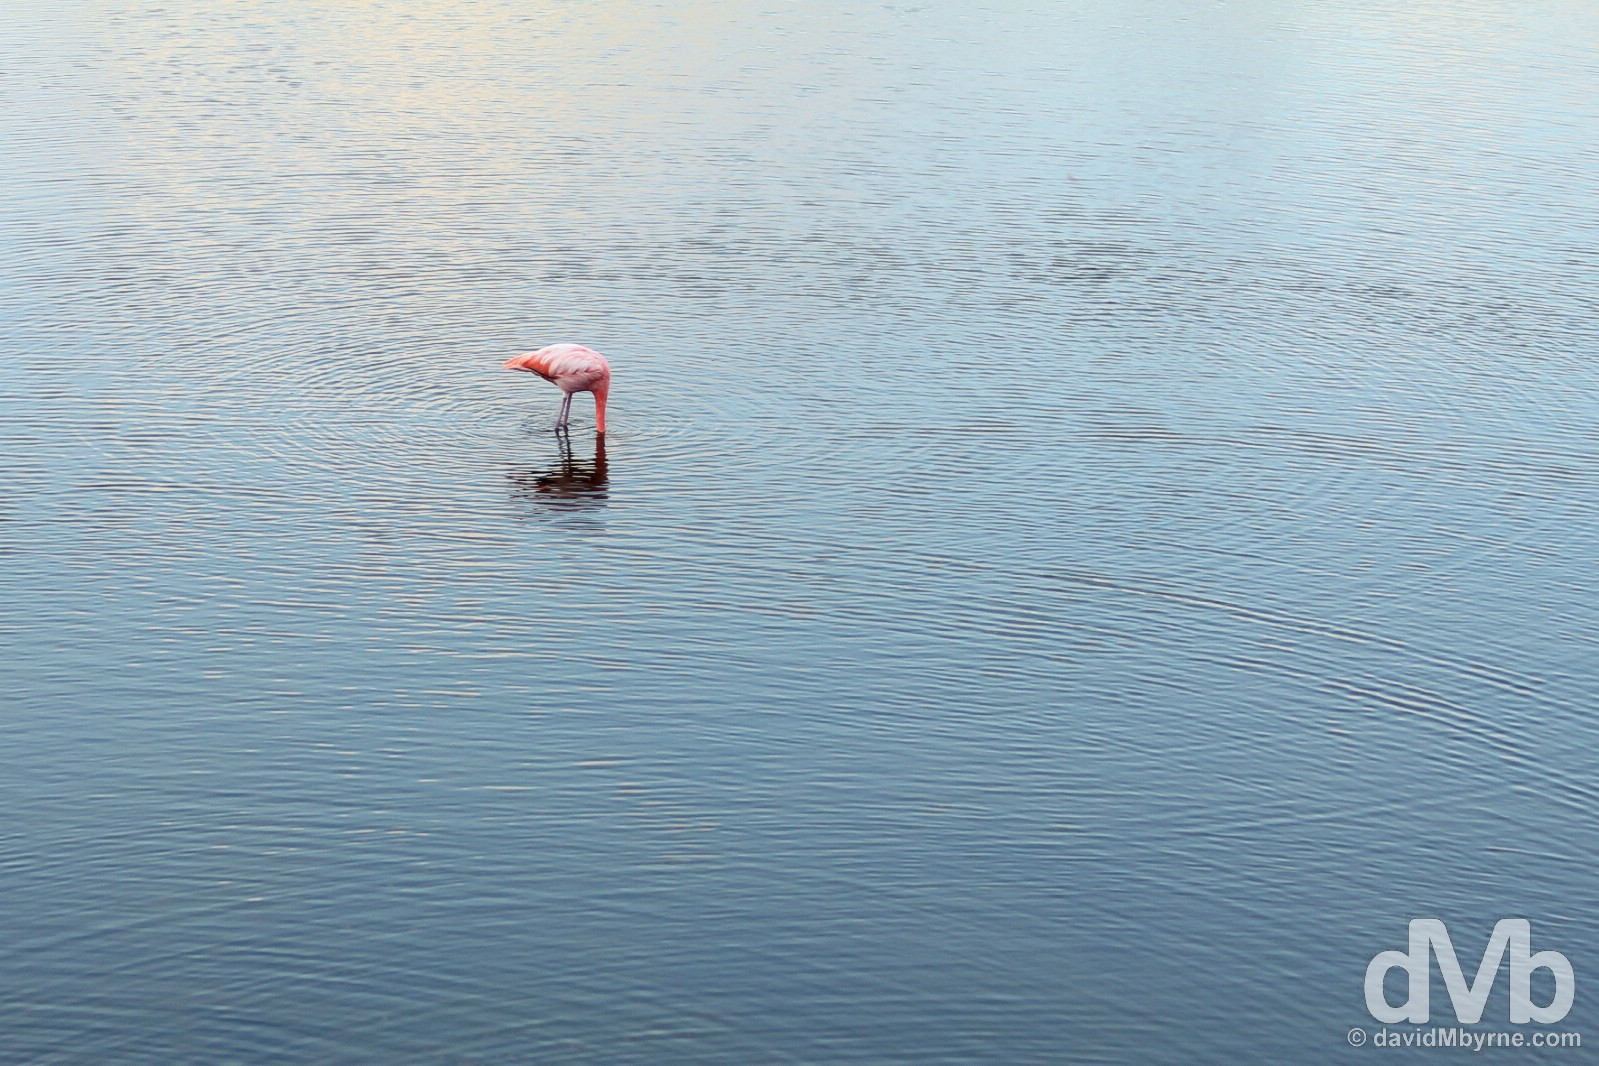 A Flamingo in a pond on Isla Isabela, Galapagos, Ecuador. July 19, 2015.